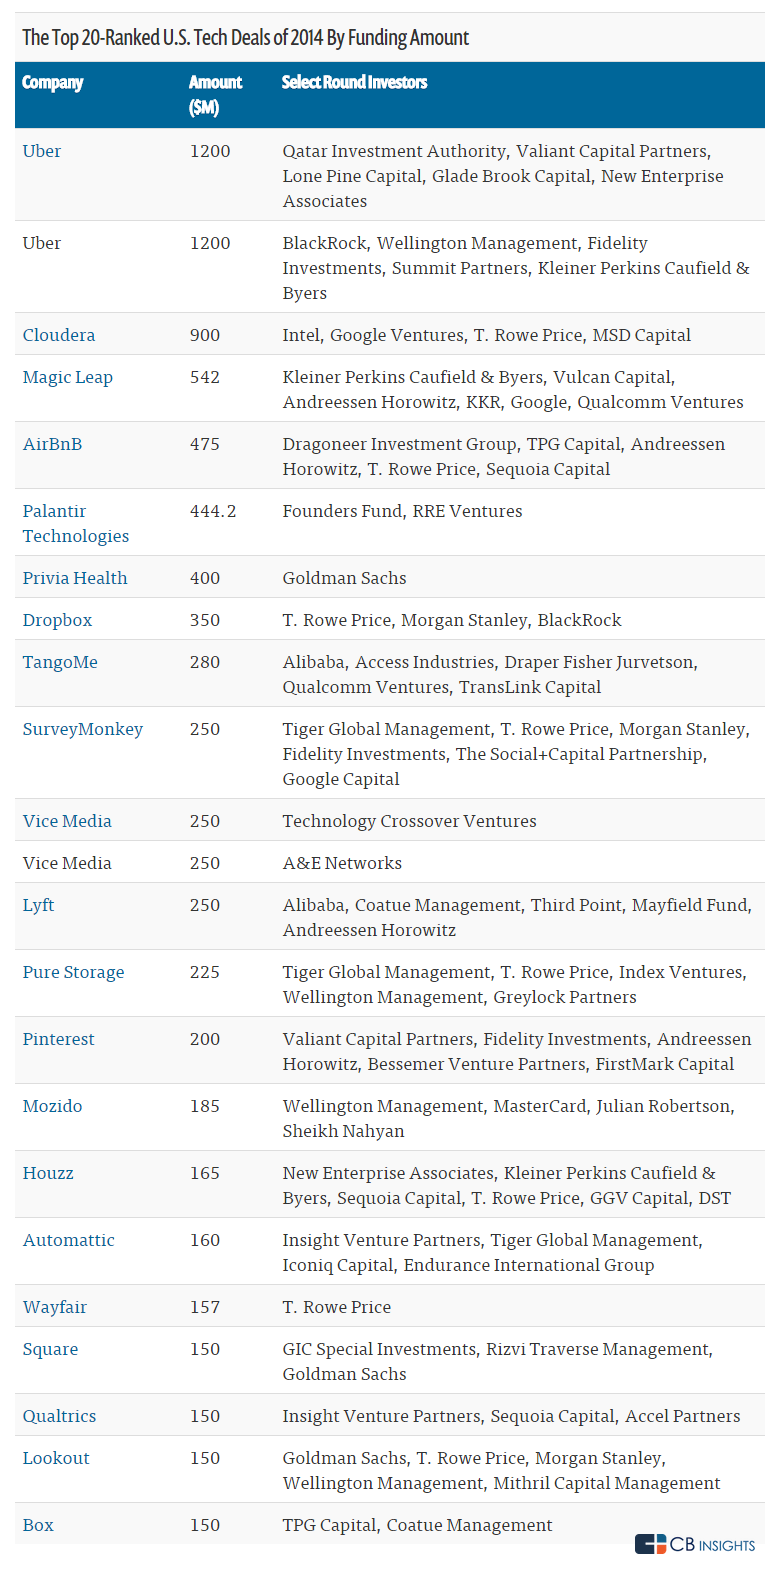 The 20 Largest Tech Financings of 2014